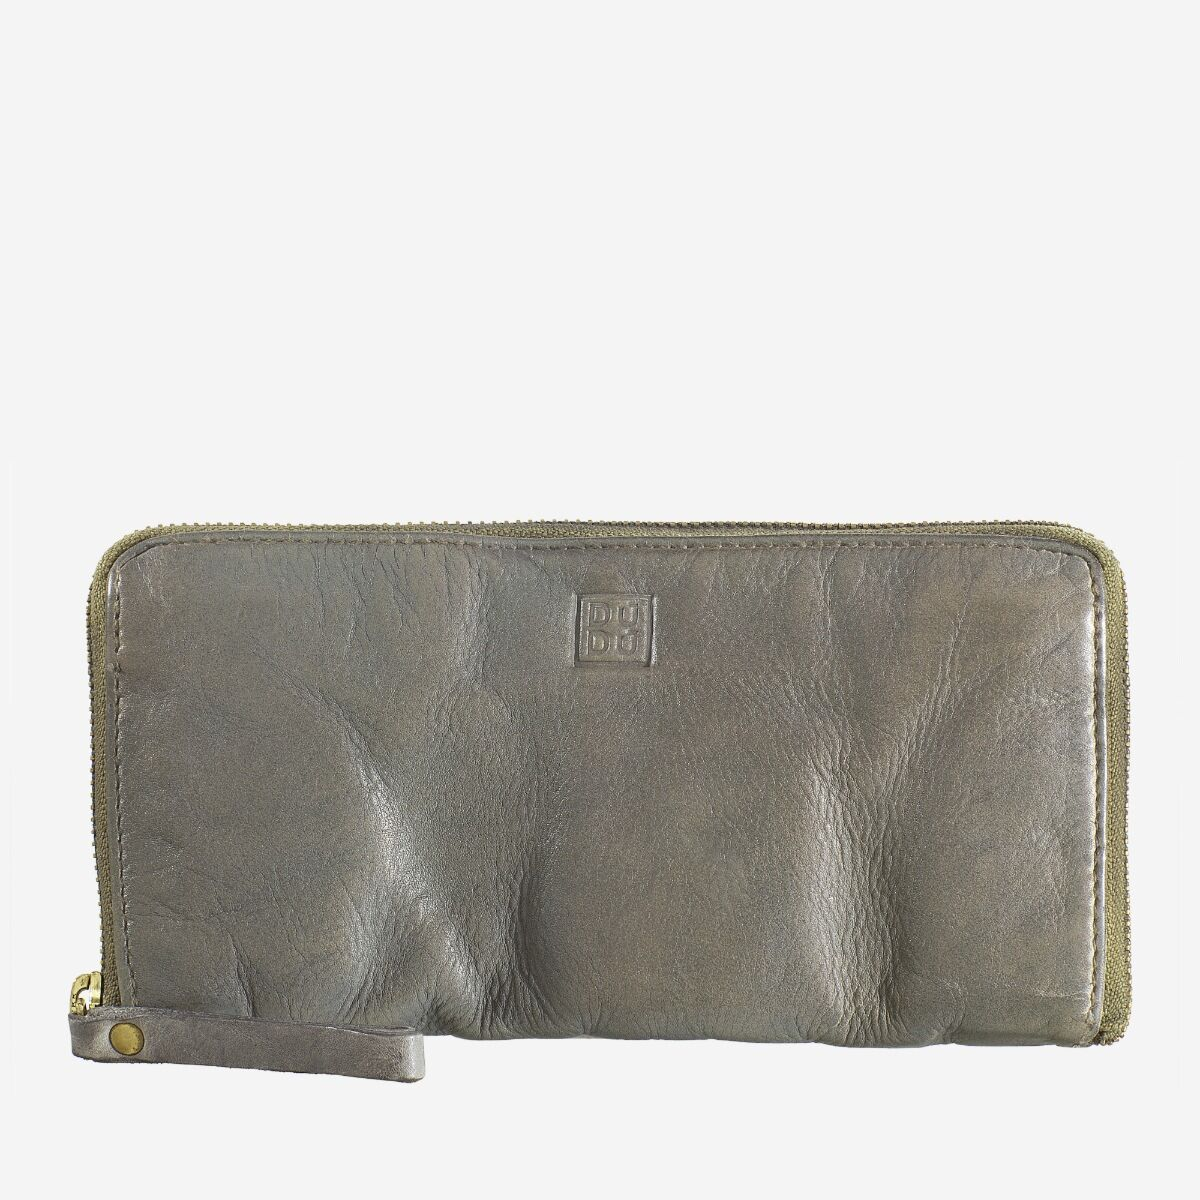 Woman's Hand-Made Soft Leather Wallet - Ash Gray